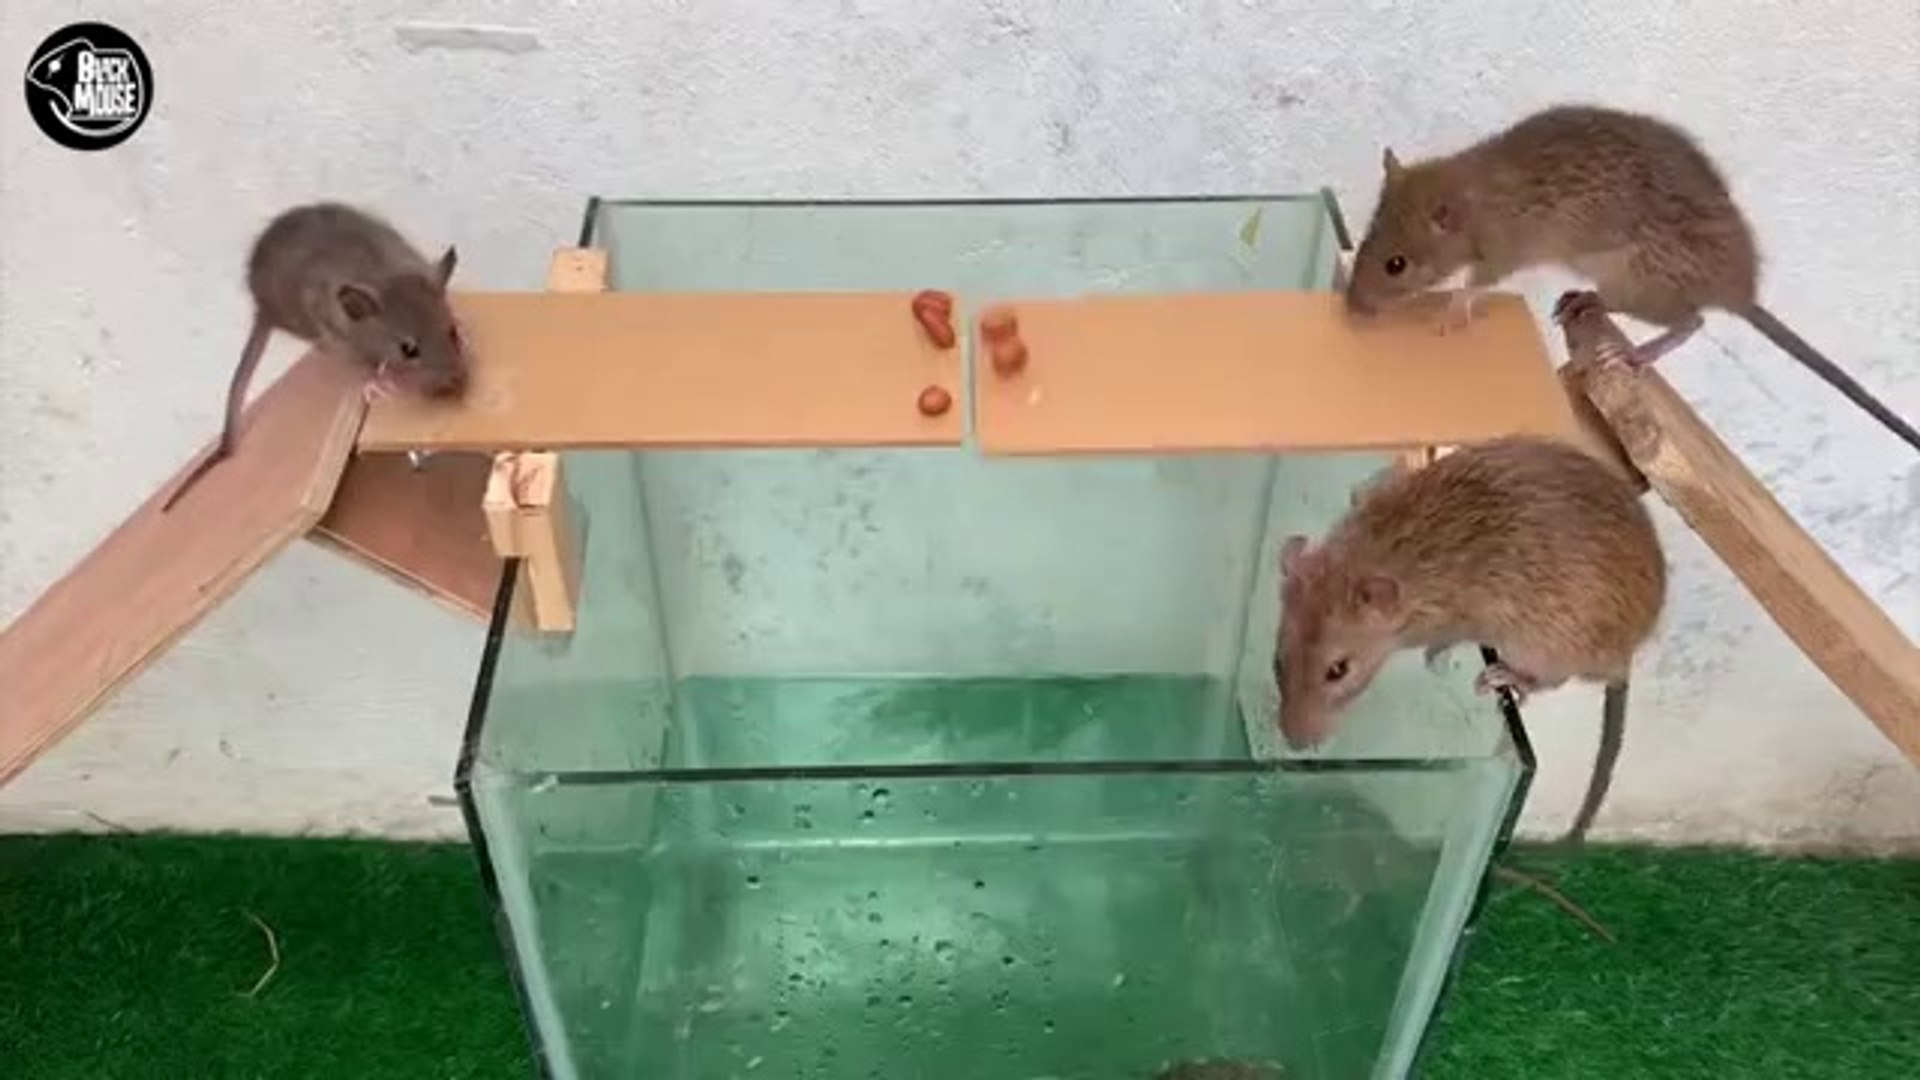 Rat Trap Water  12 Mice in trapped 1 Hour  Mouse_ Rat trap  How to Make Rat Trap ---